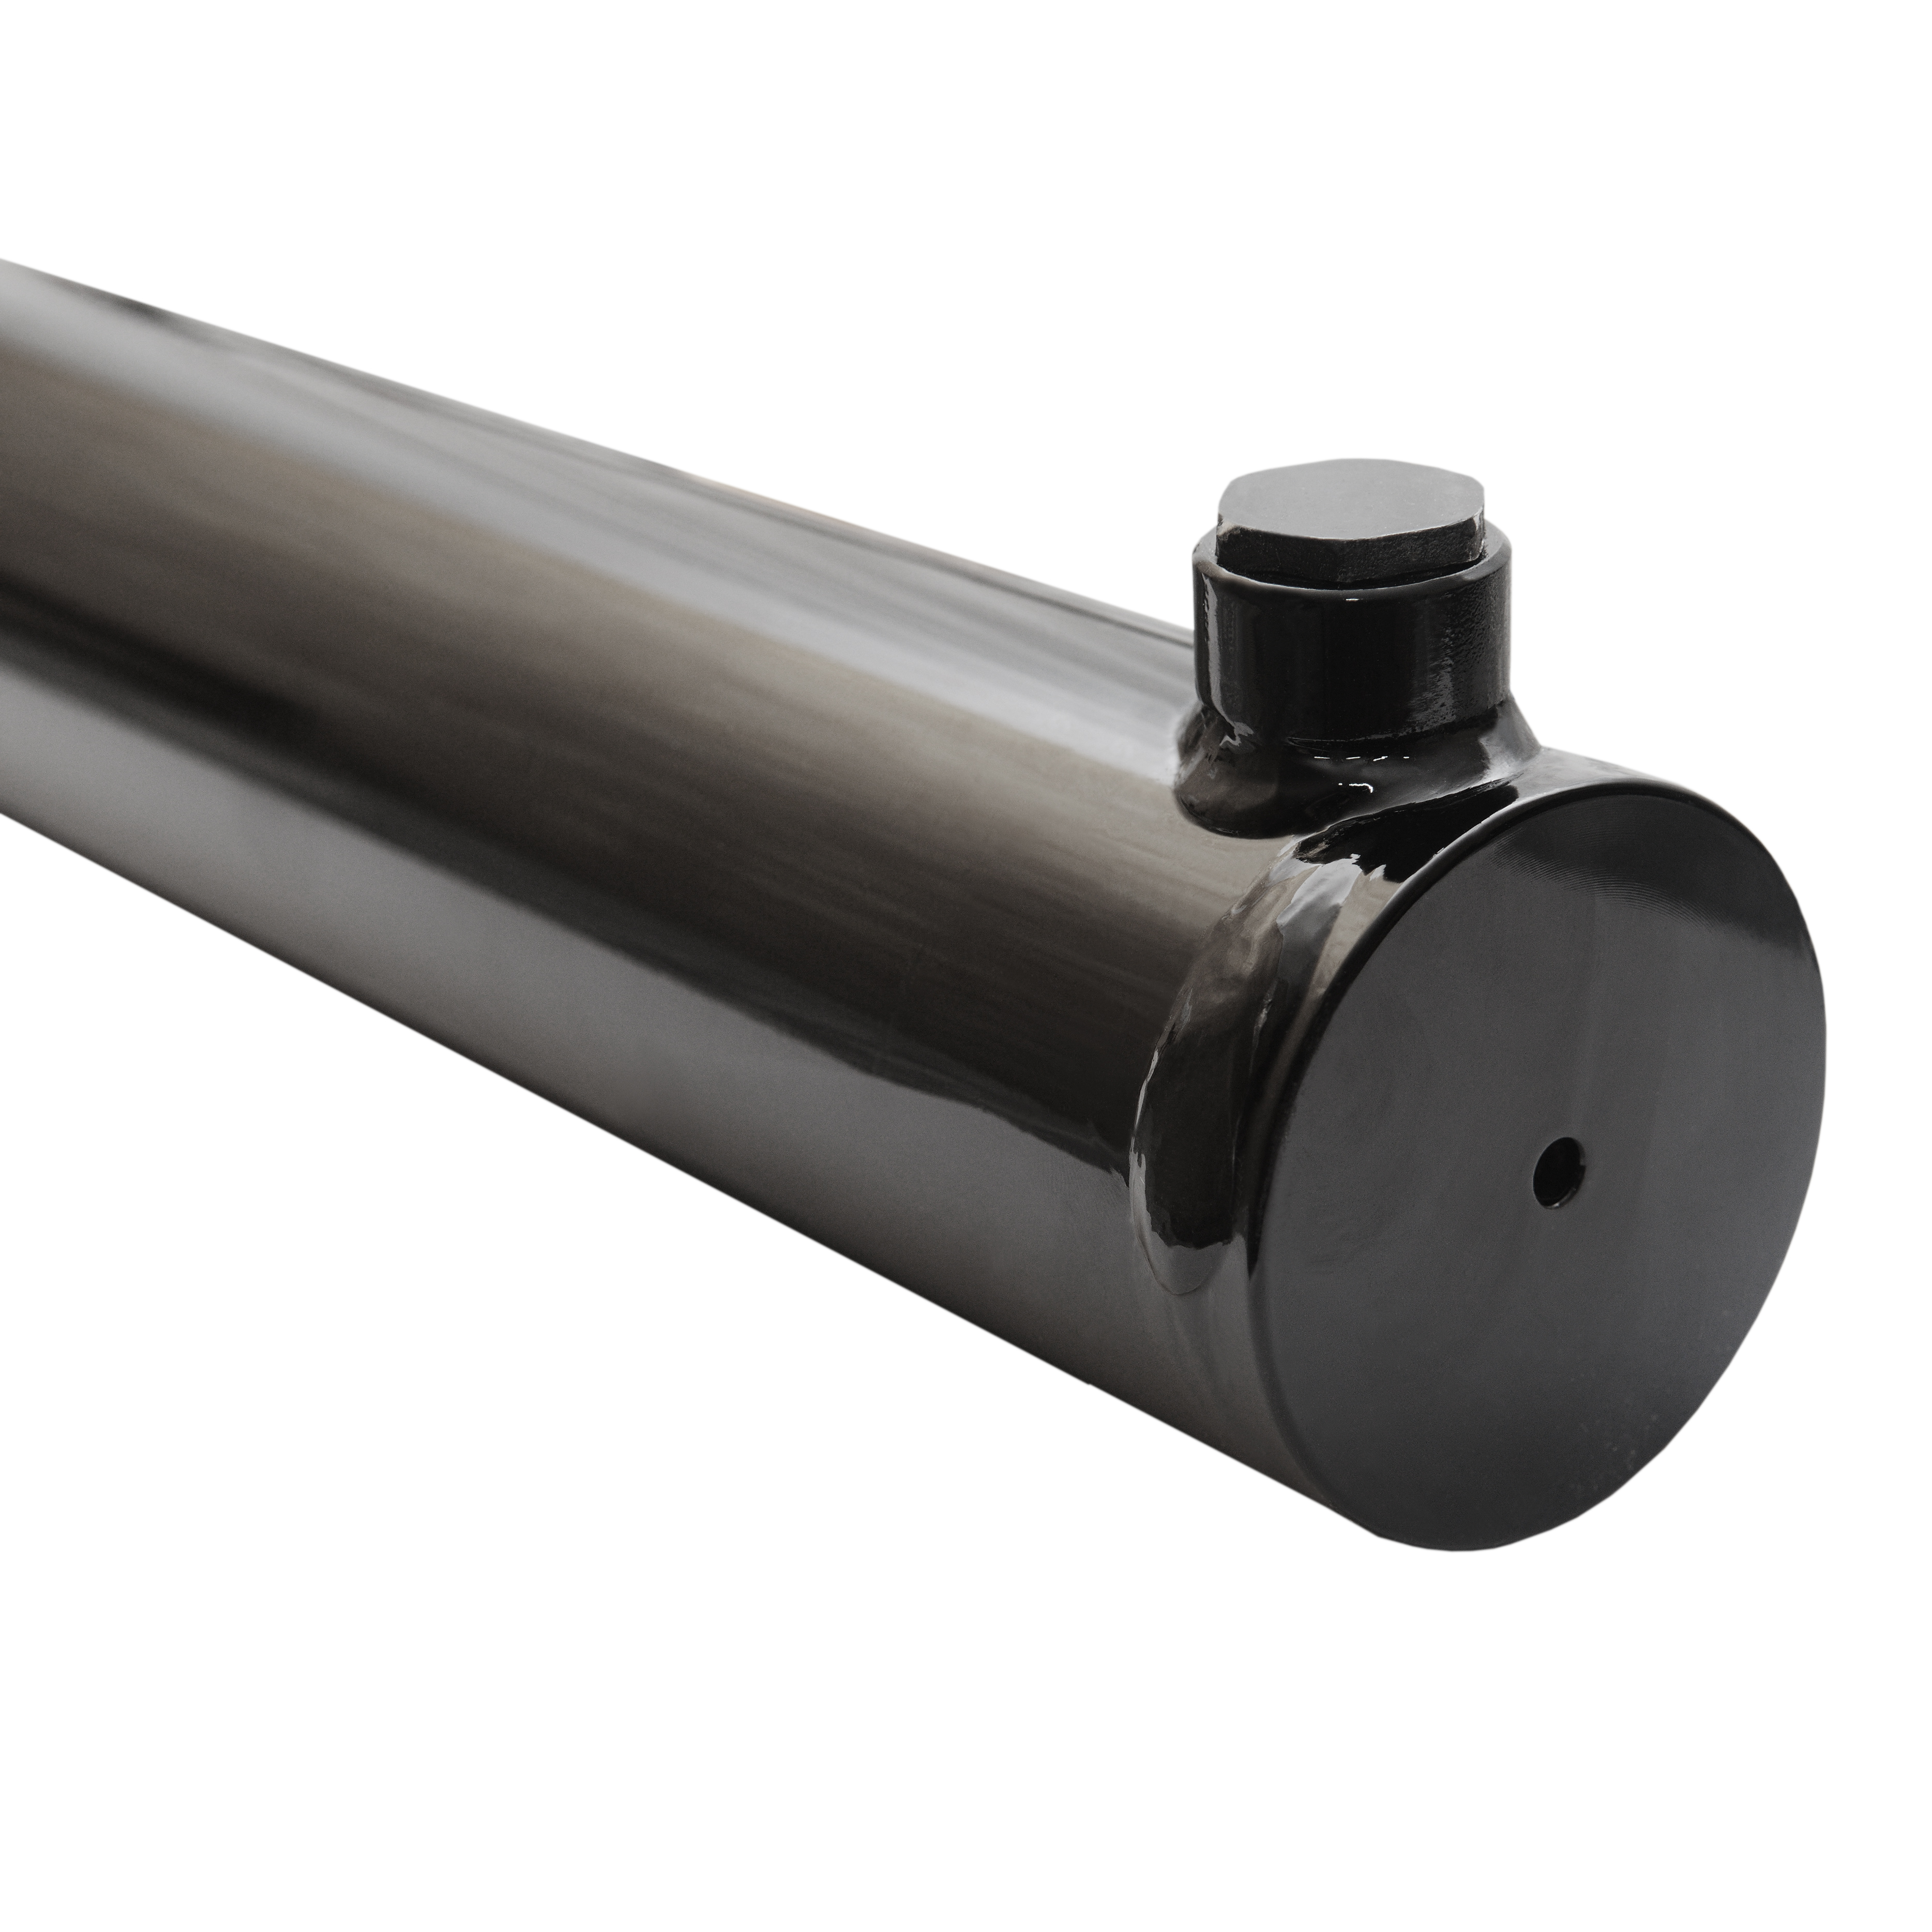 2.5 bore x 10 stroke hydraulic cylinder, welded universal double acting cylinder | Magister Hydraulics